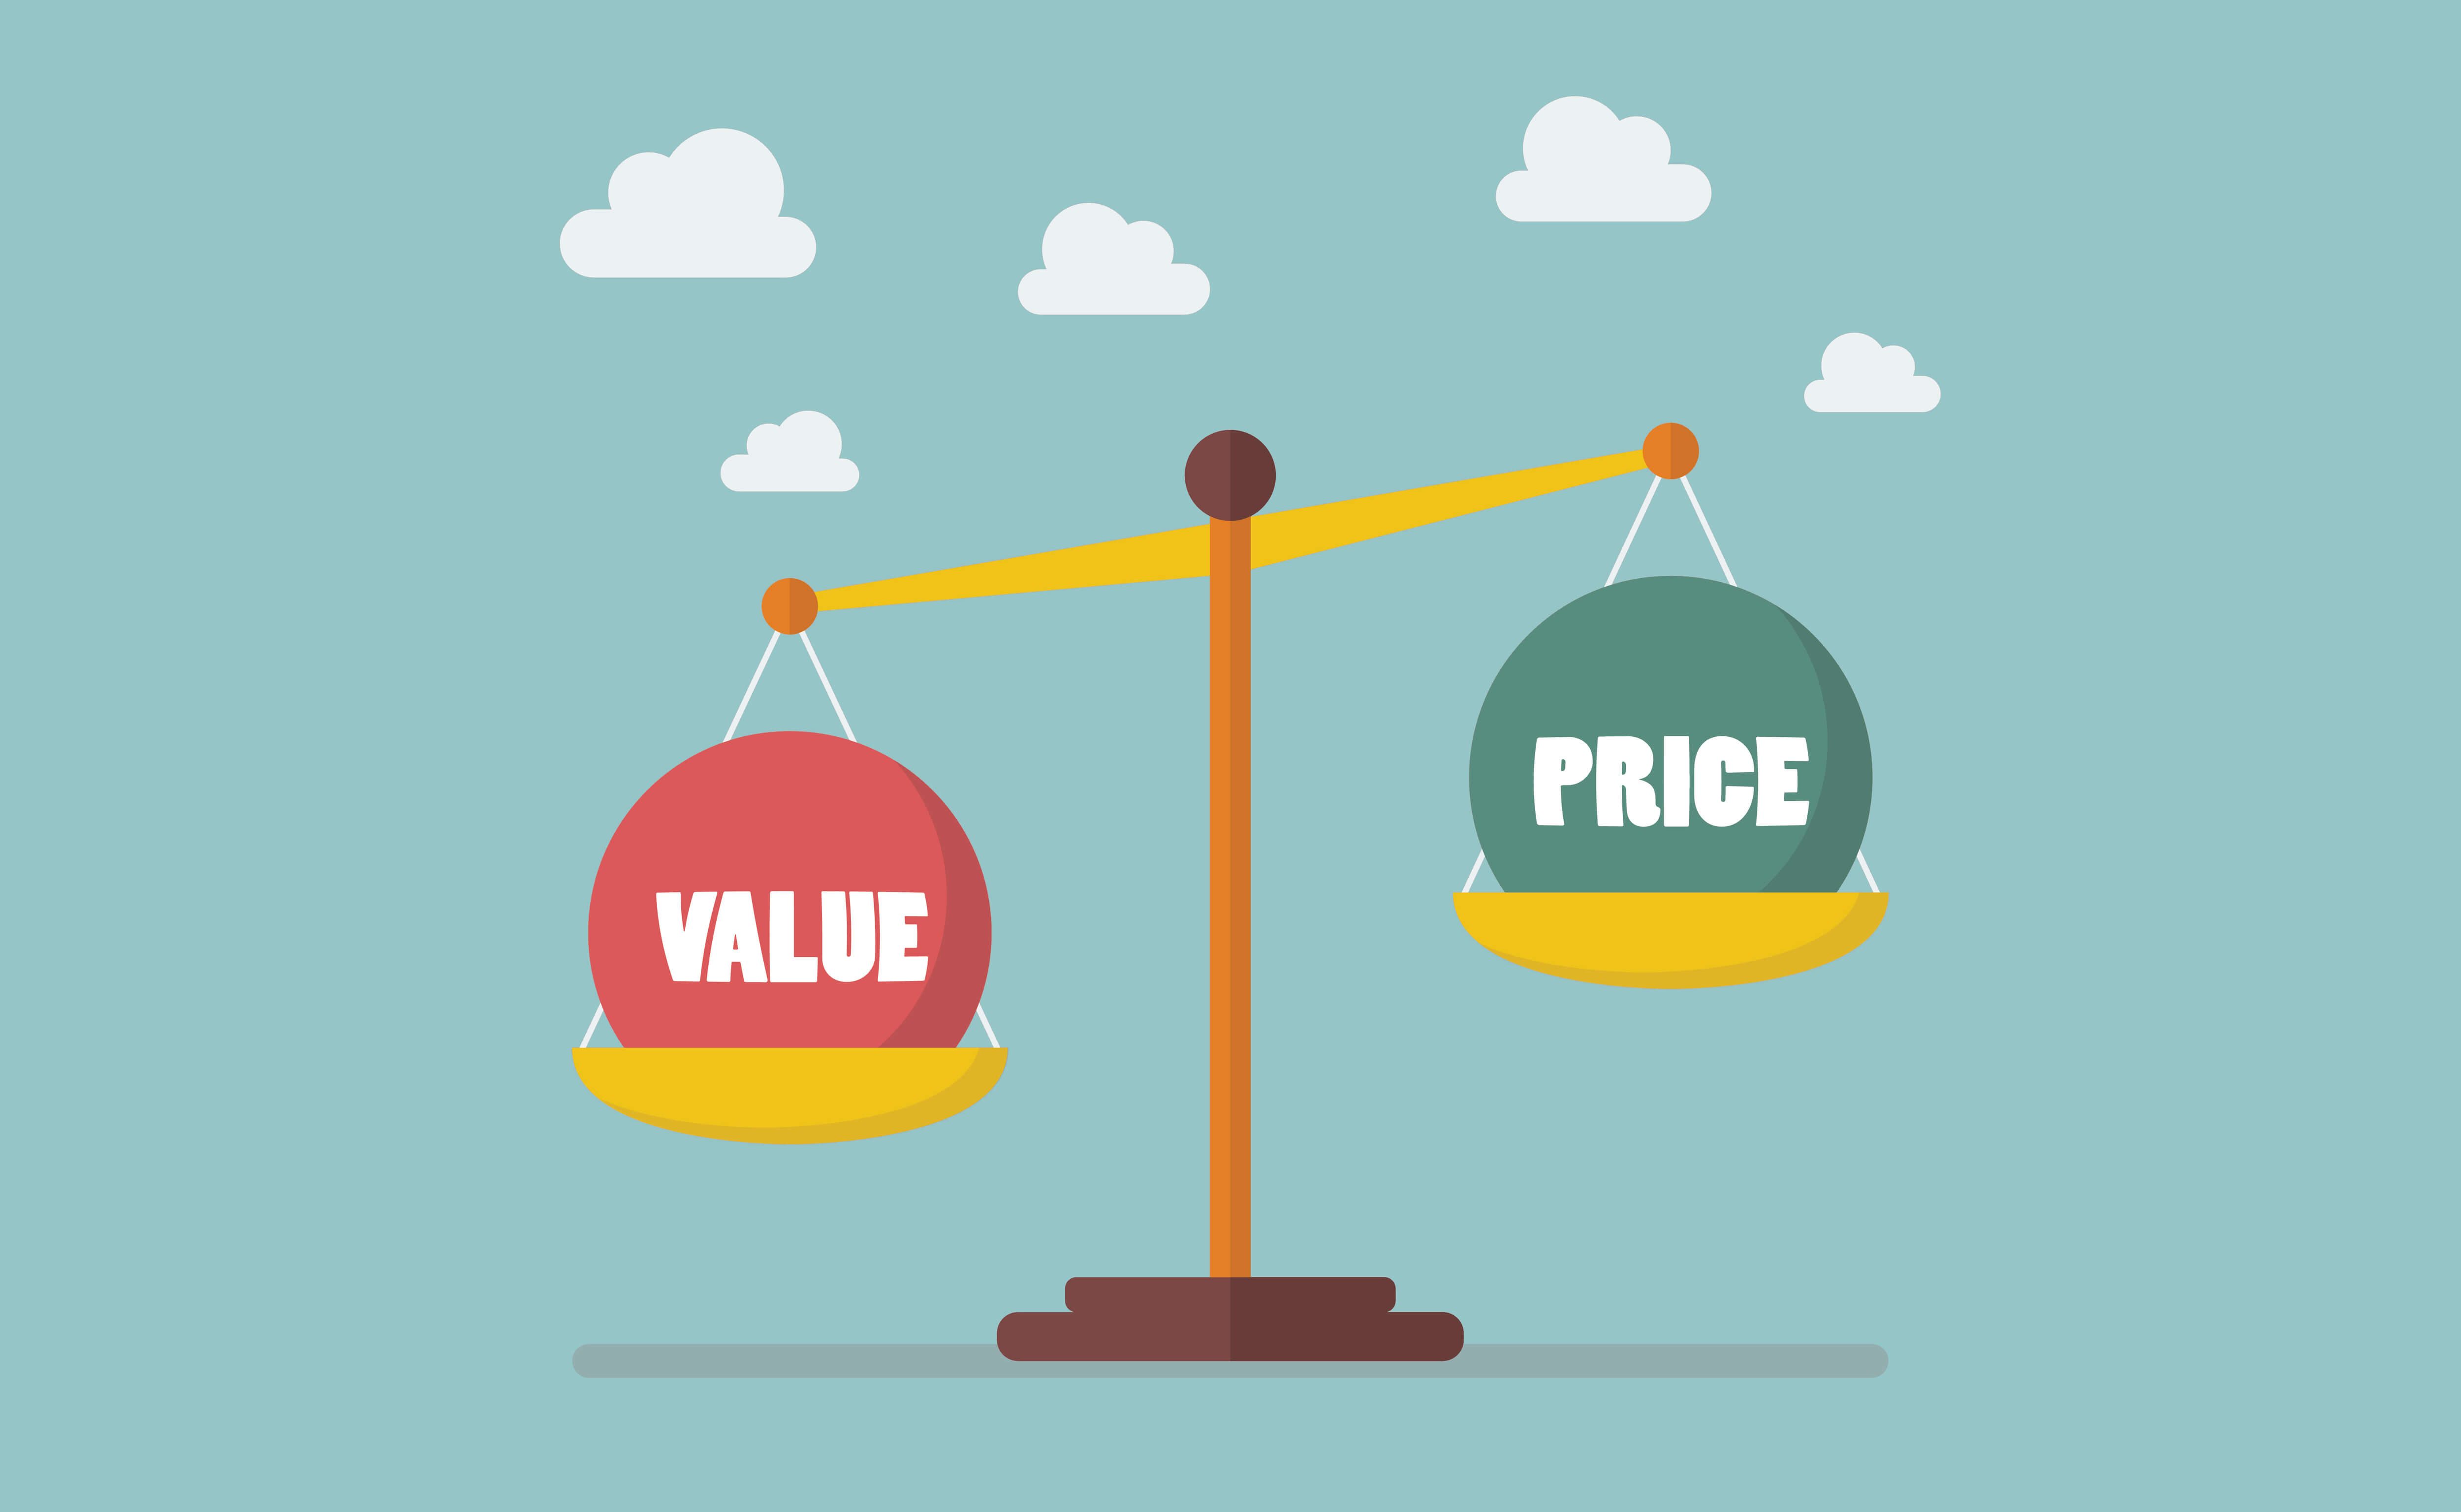 Value and Price balance on the scale